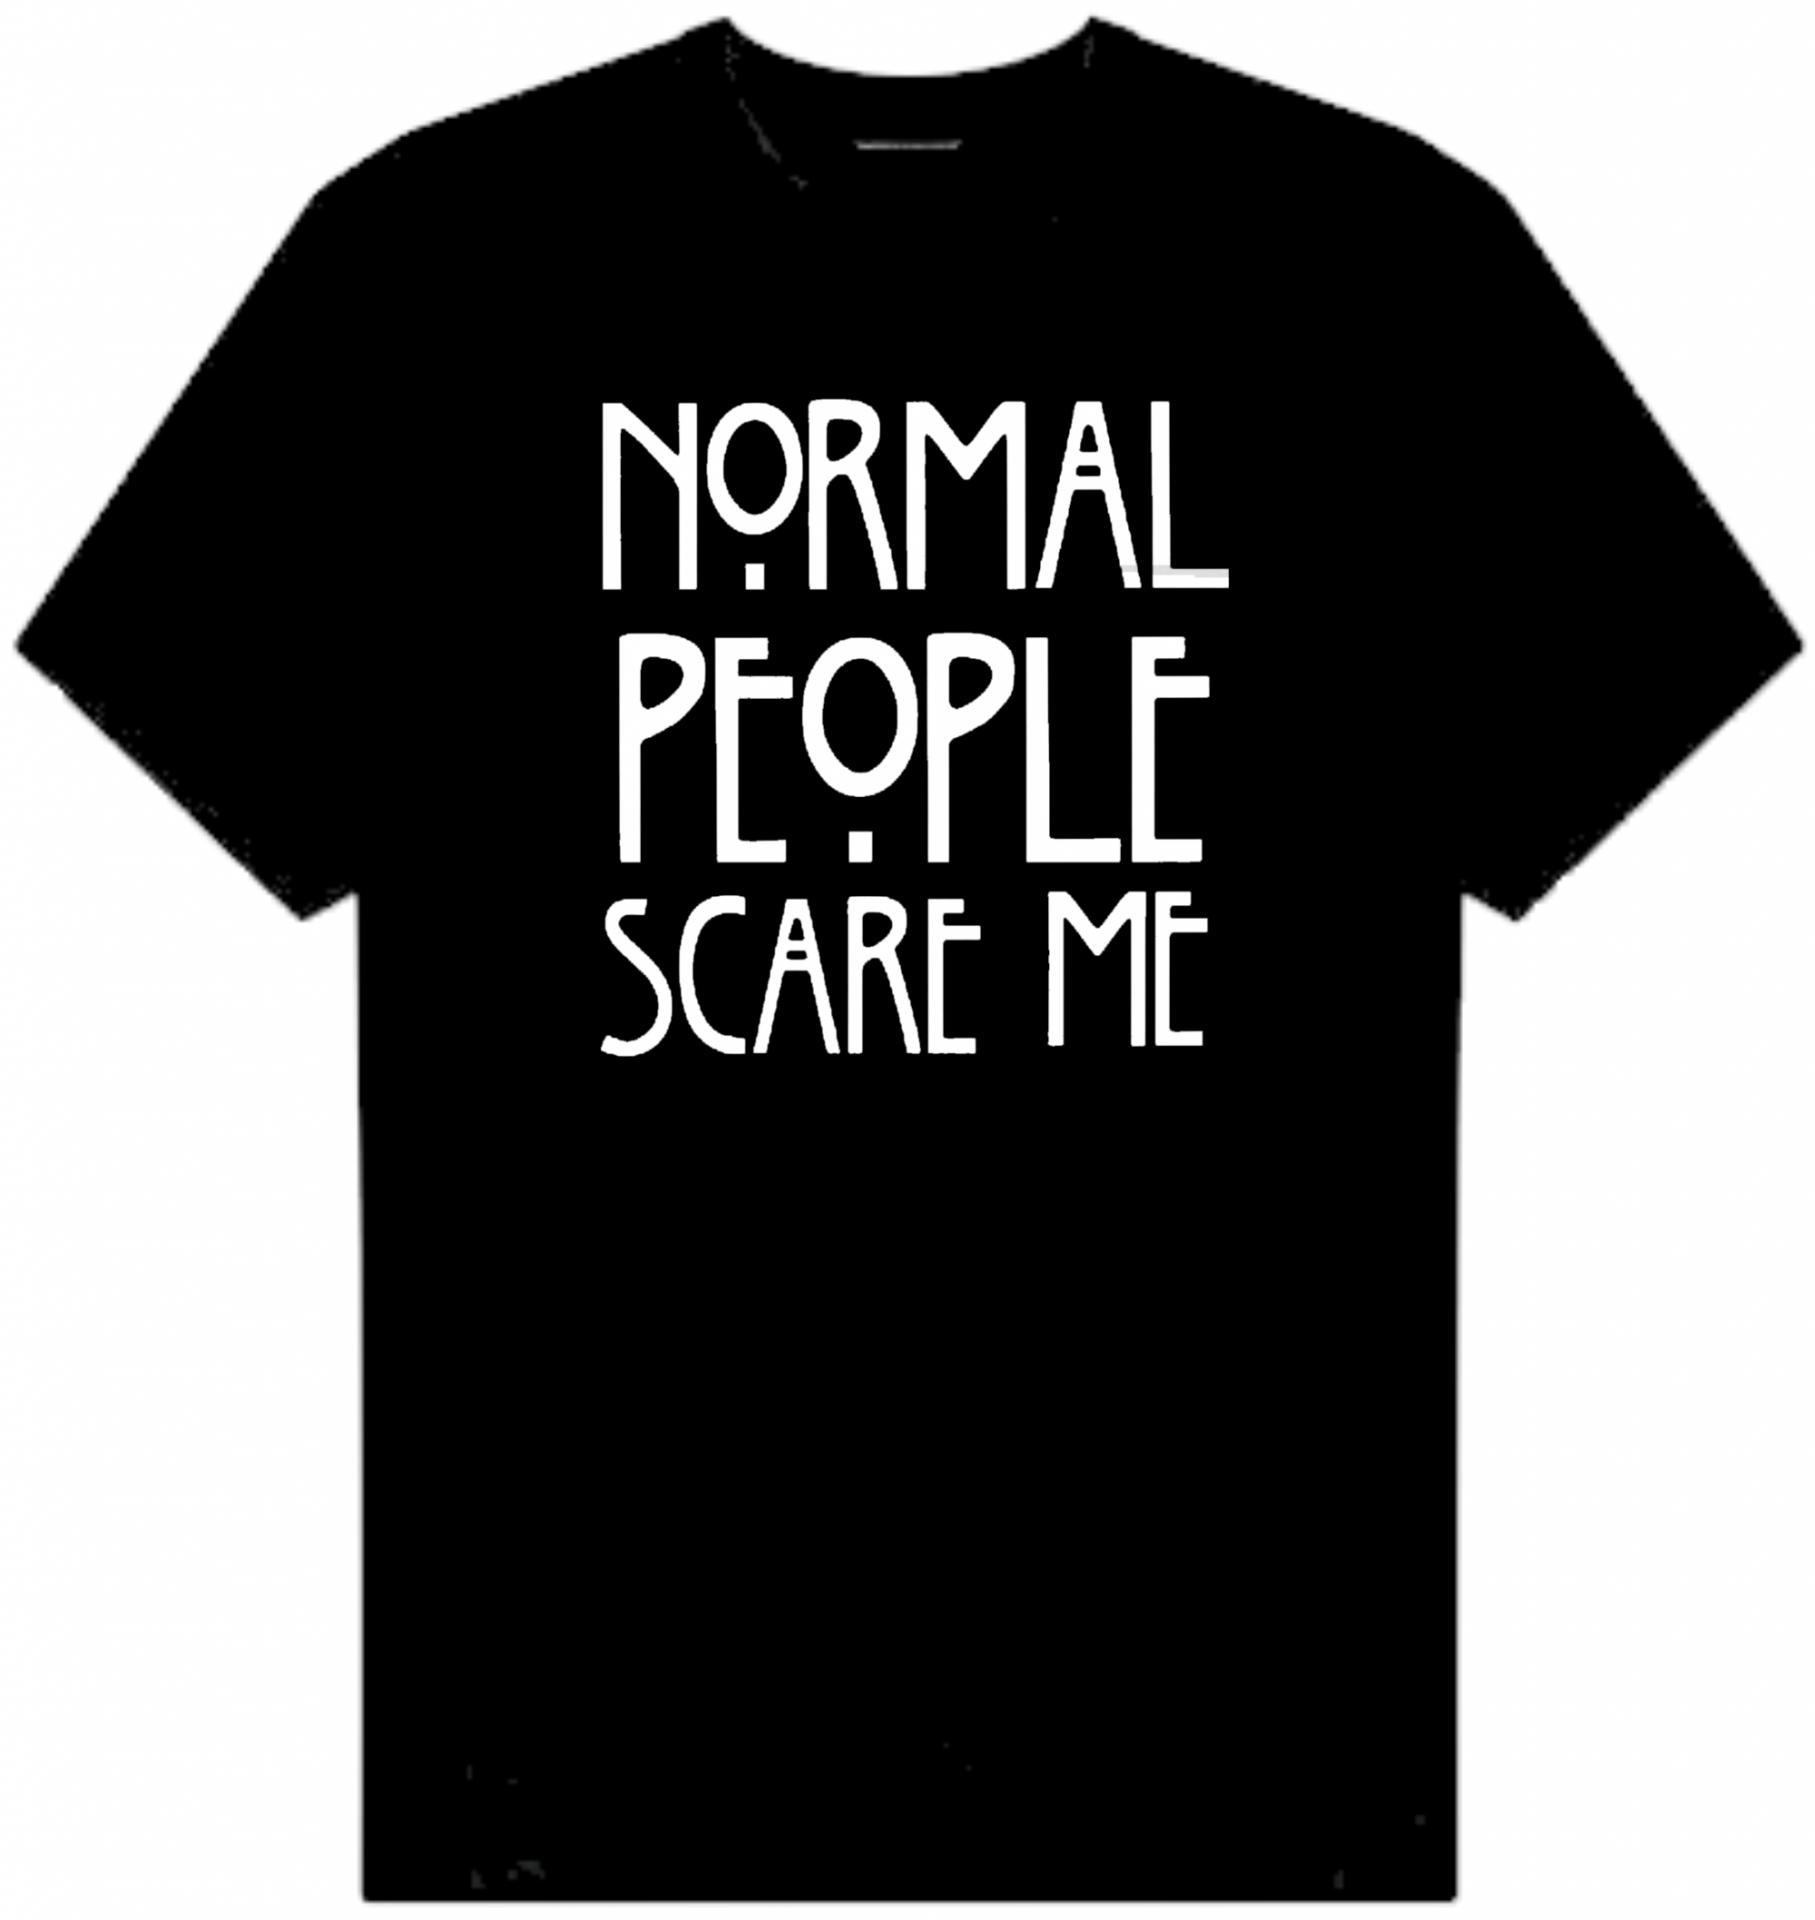 CAMISETA NORMAL PEOPLE SCARE ME